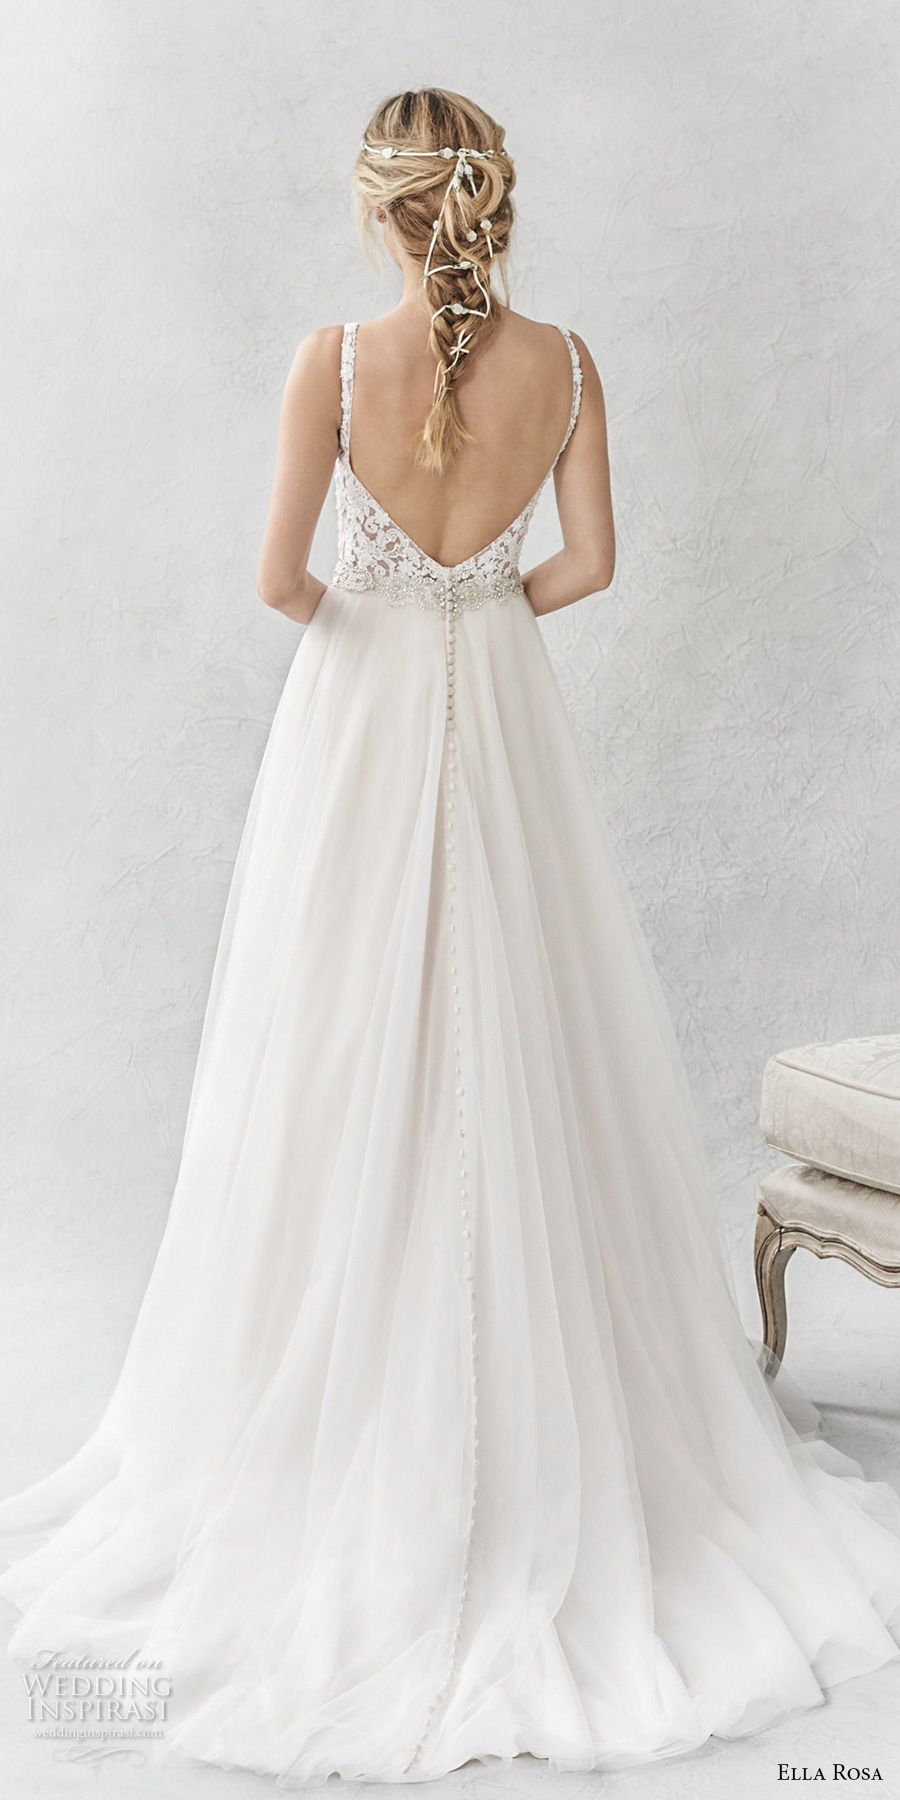 ella rosa spring 2017 bridal sleeveless with strap deep plunging sweetheart neckline heavily embellished bodice open scoop back sweep train (358) bv